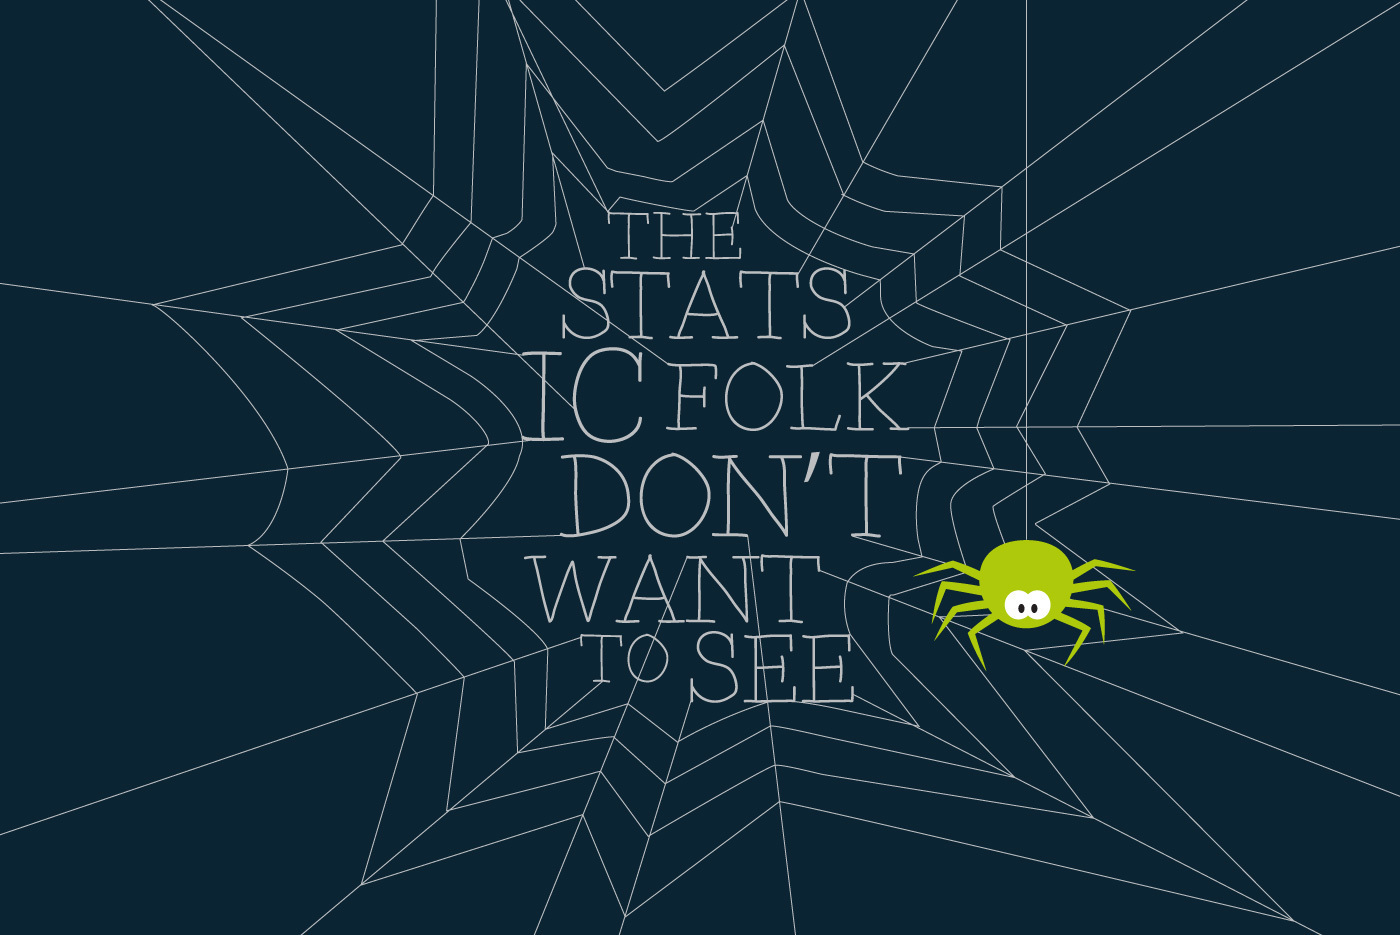 the stats internal comms professionals don't want you to see - spider web